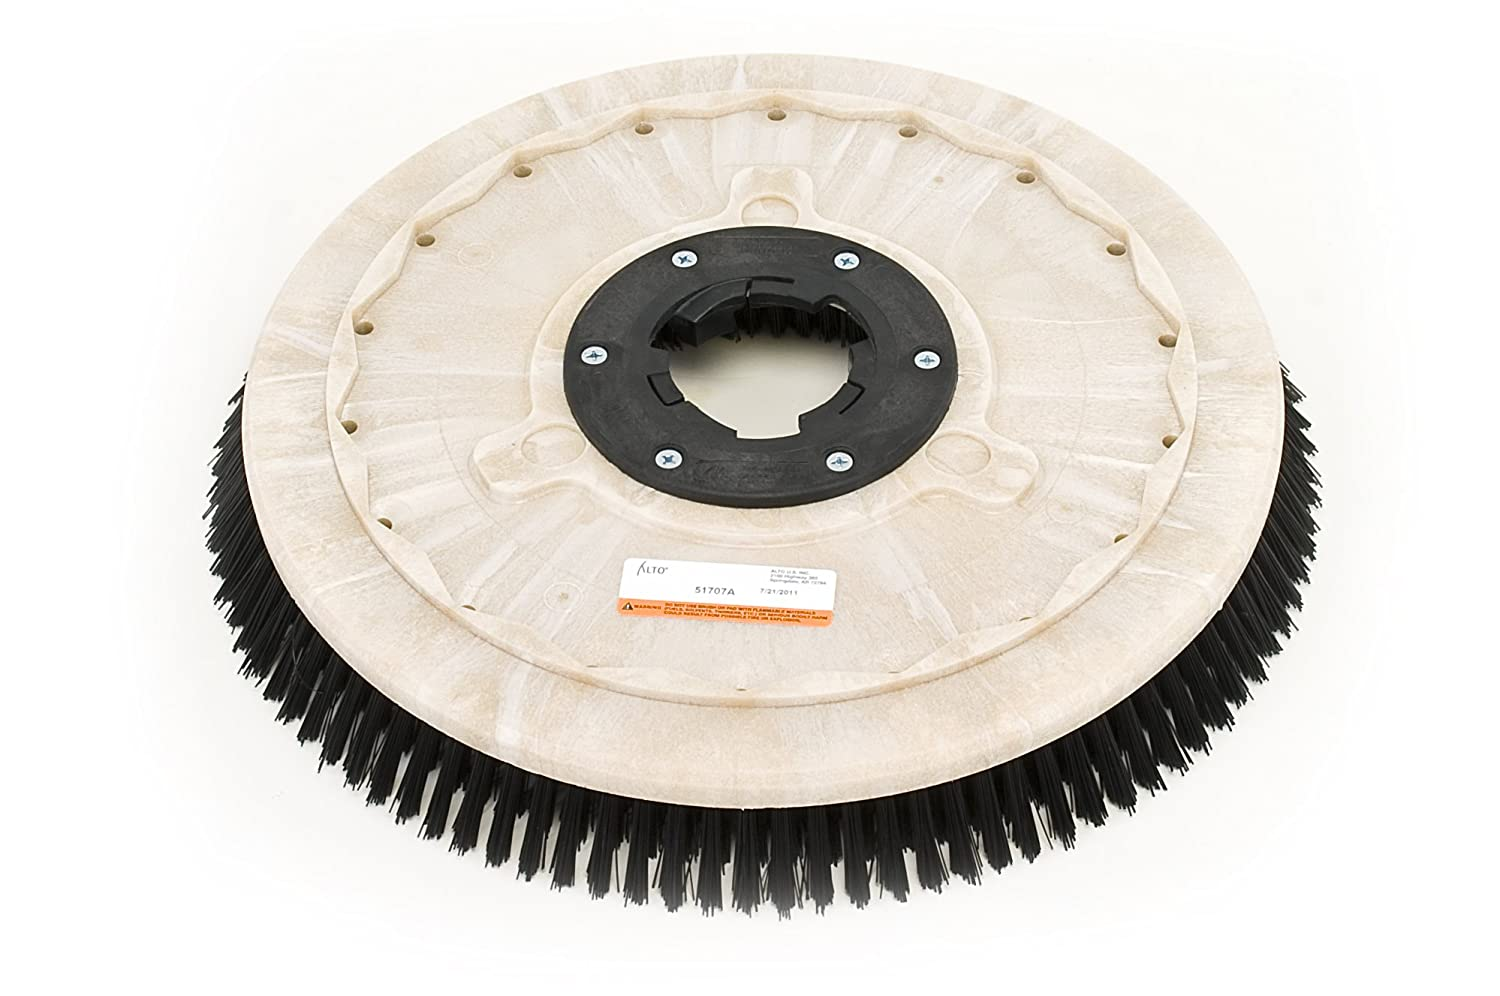 Clarke 51705A Commercial 17 Inch Diameter Polypropylene Scrub Brush: Floor  Machine Brush: Amazon.com: Industrial & Scientific